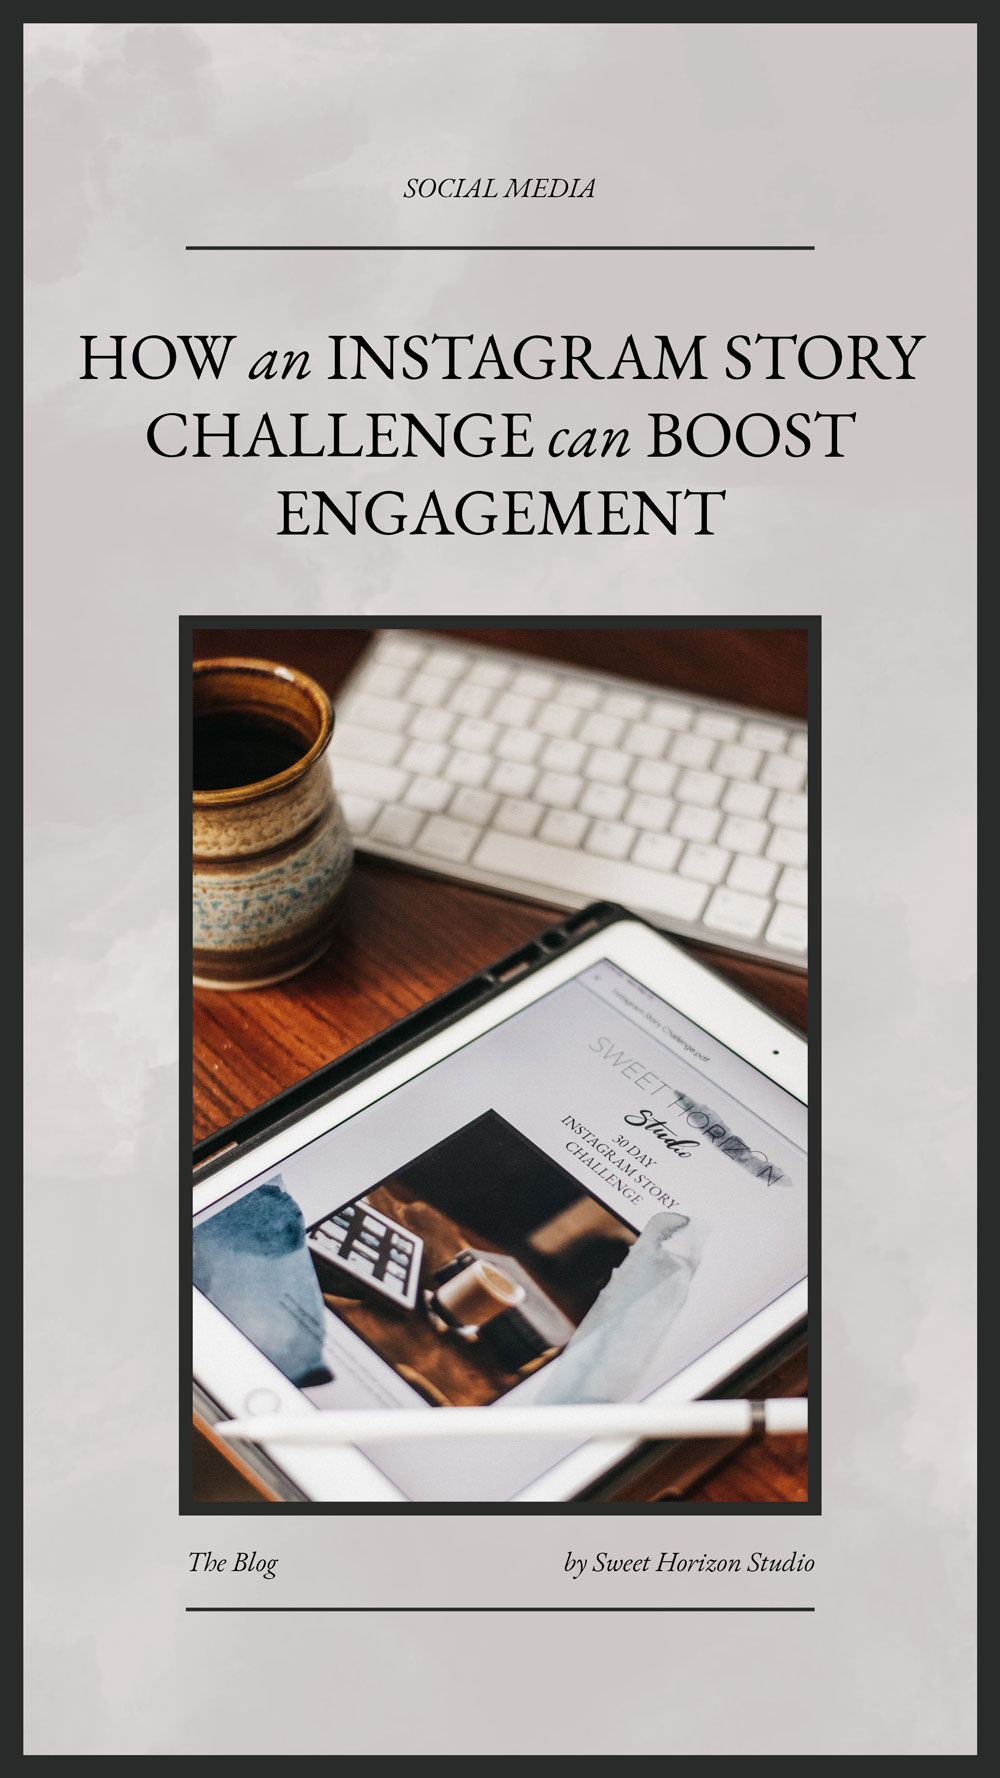 How an Instagram story challenge can boost engagement from www.sweethorizonblog.com